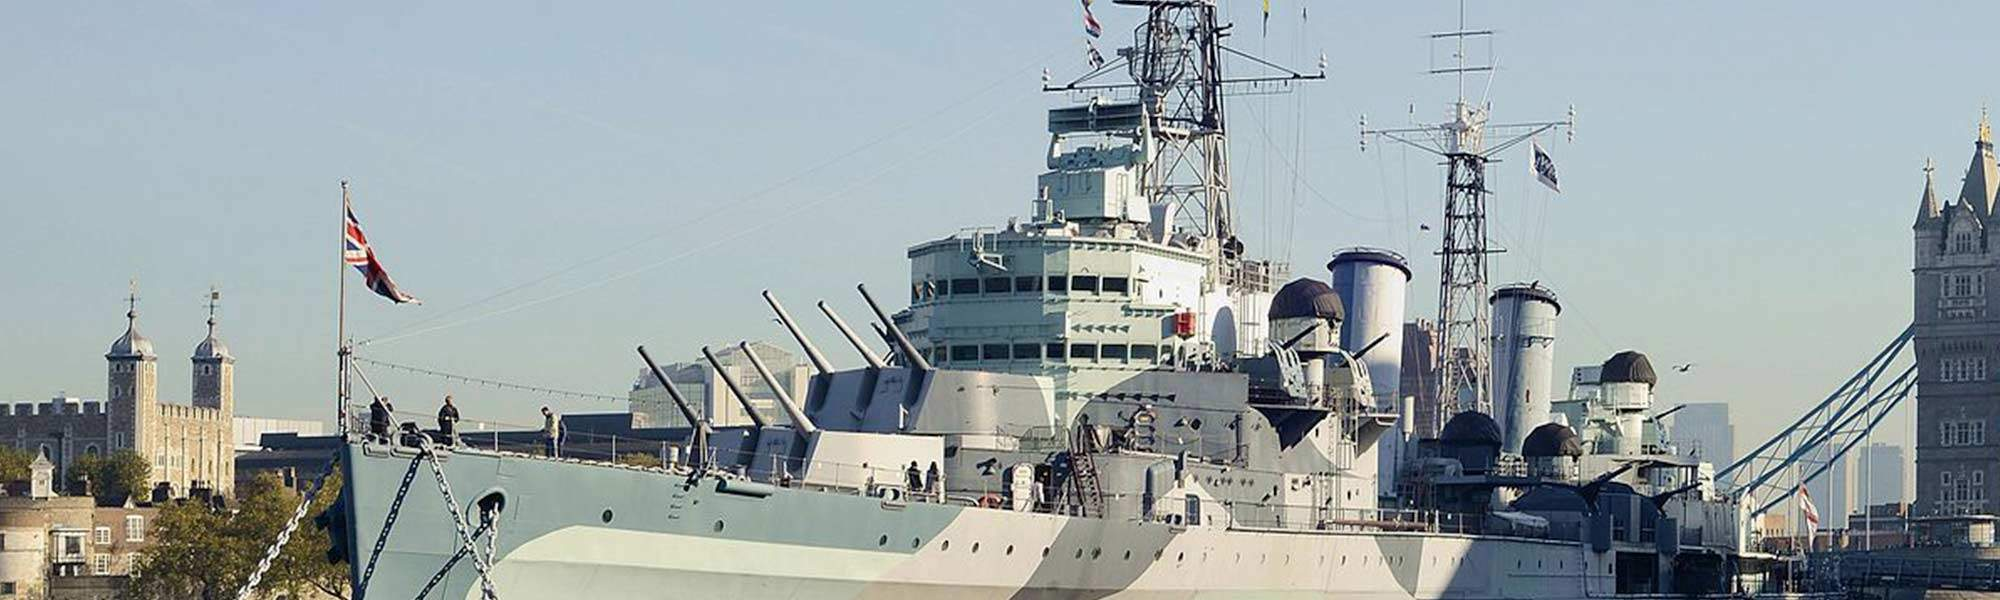 HMS Belfast - Climb Aboard This Unique WWII Battleship and Discover Life at Sea!